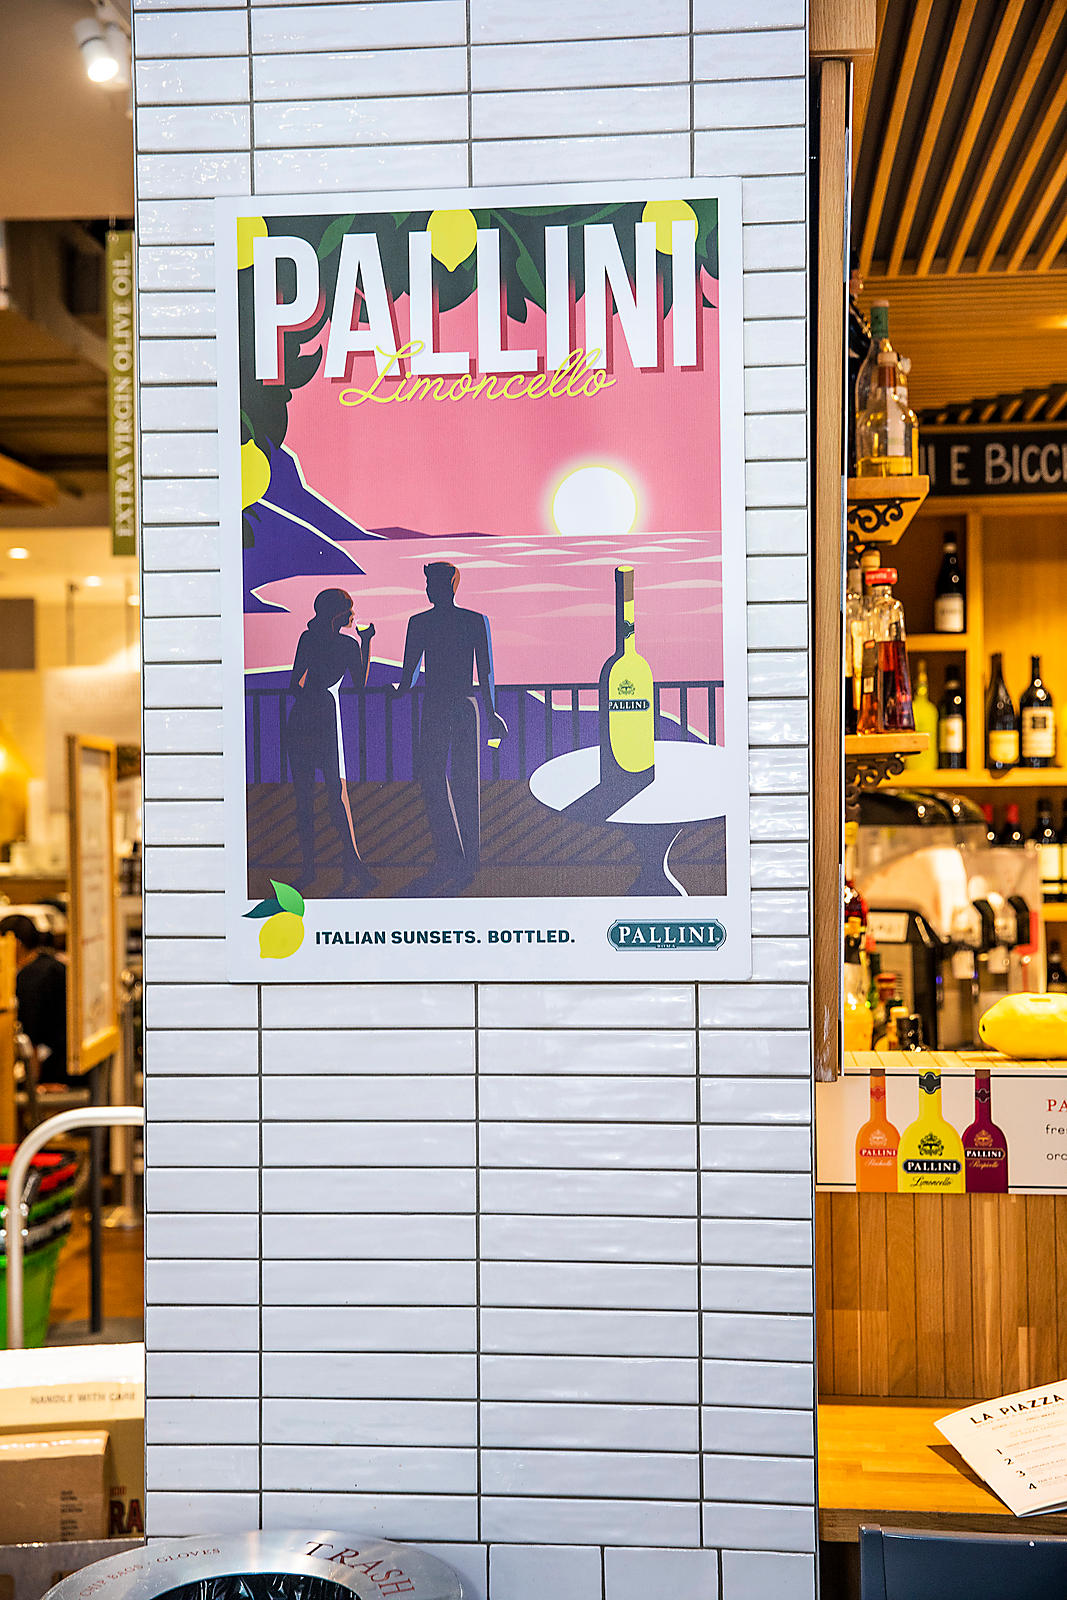 Pallini event at Eataly Boston